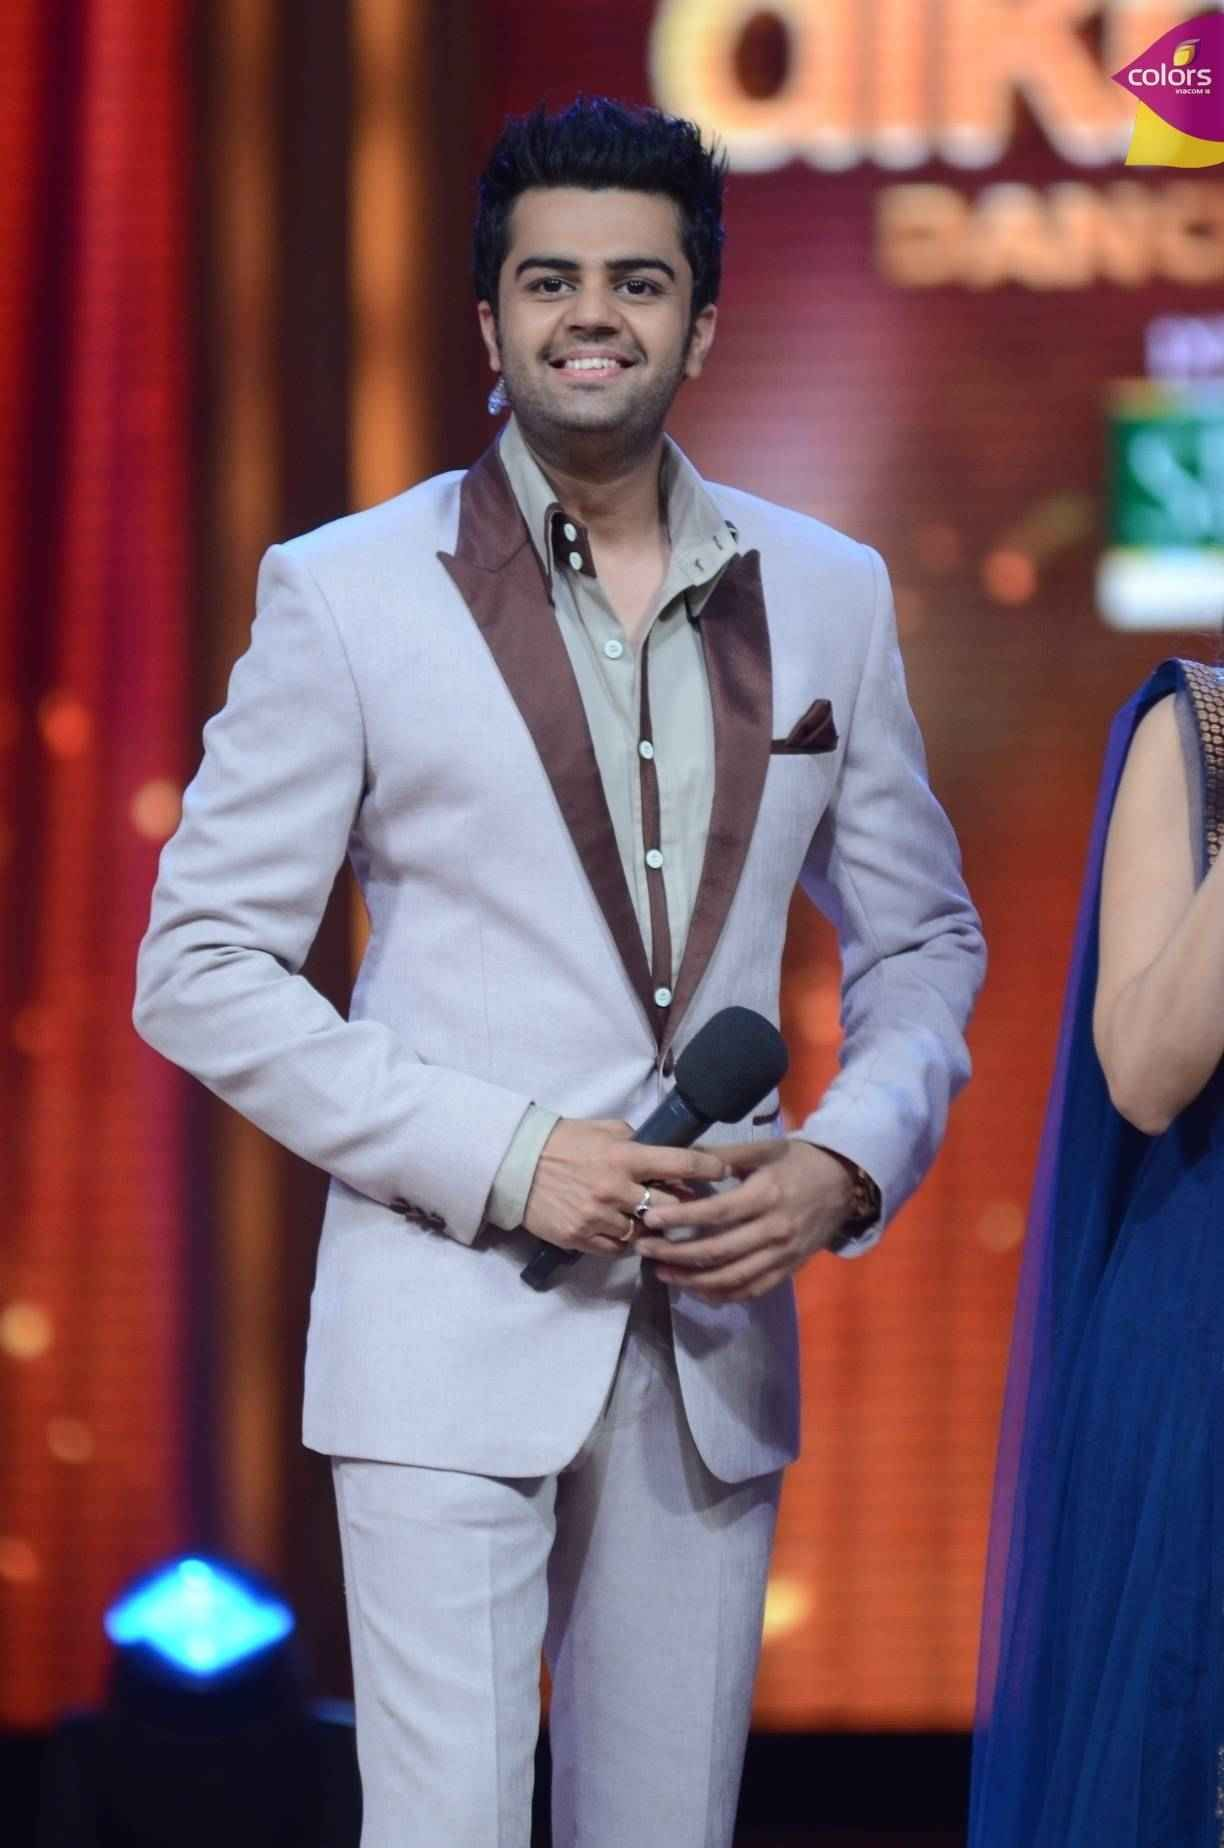 manish paul height | celebrity fact | pinterest | manish paul and